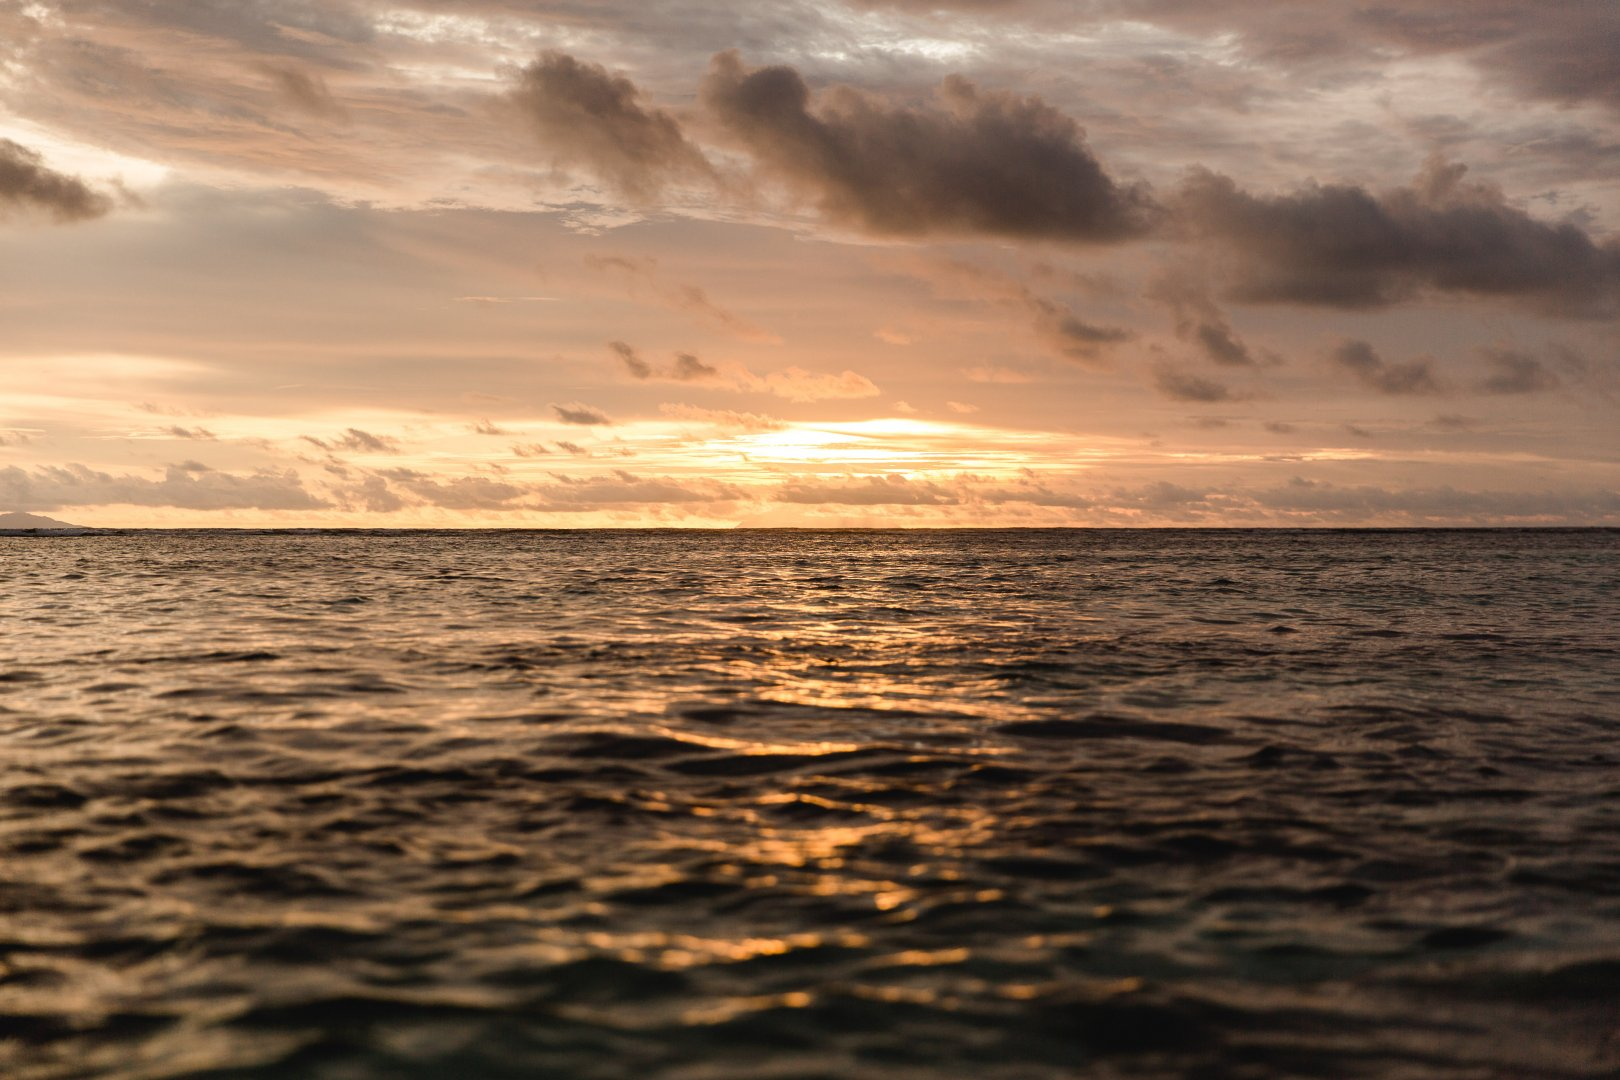 Sky Horizon Body of water Sea Water Nature Ocean Sunset Cloud Sunrise Evening Calm Afterglow Morning Dusk Wave Sound Reflection Atmosphere Sunlight Wind wave Coast Dawn Shore Vacation Beach Photography Cumulus Red sky at morning Stock photography